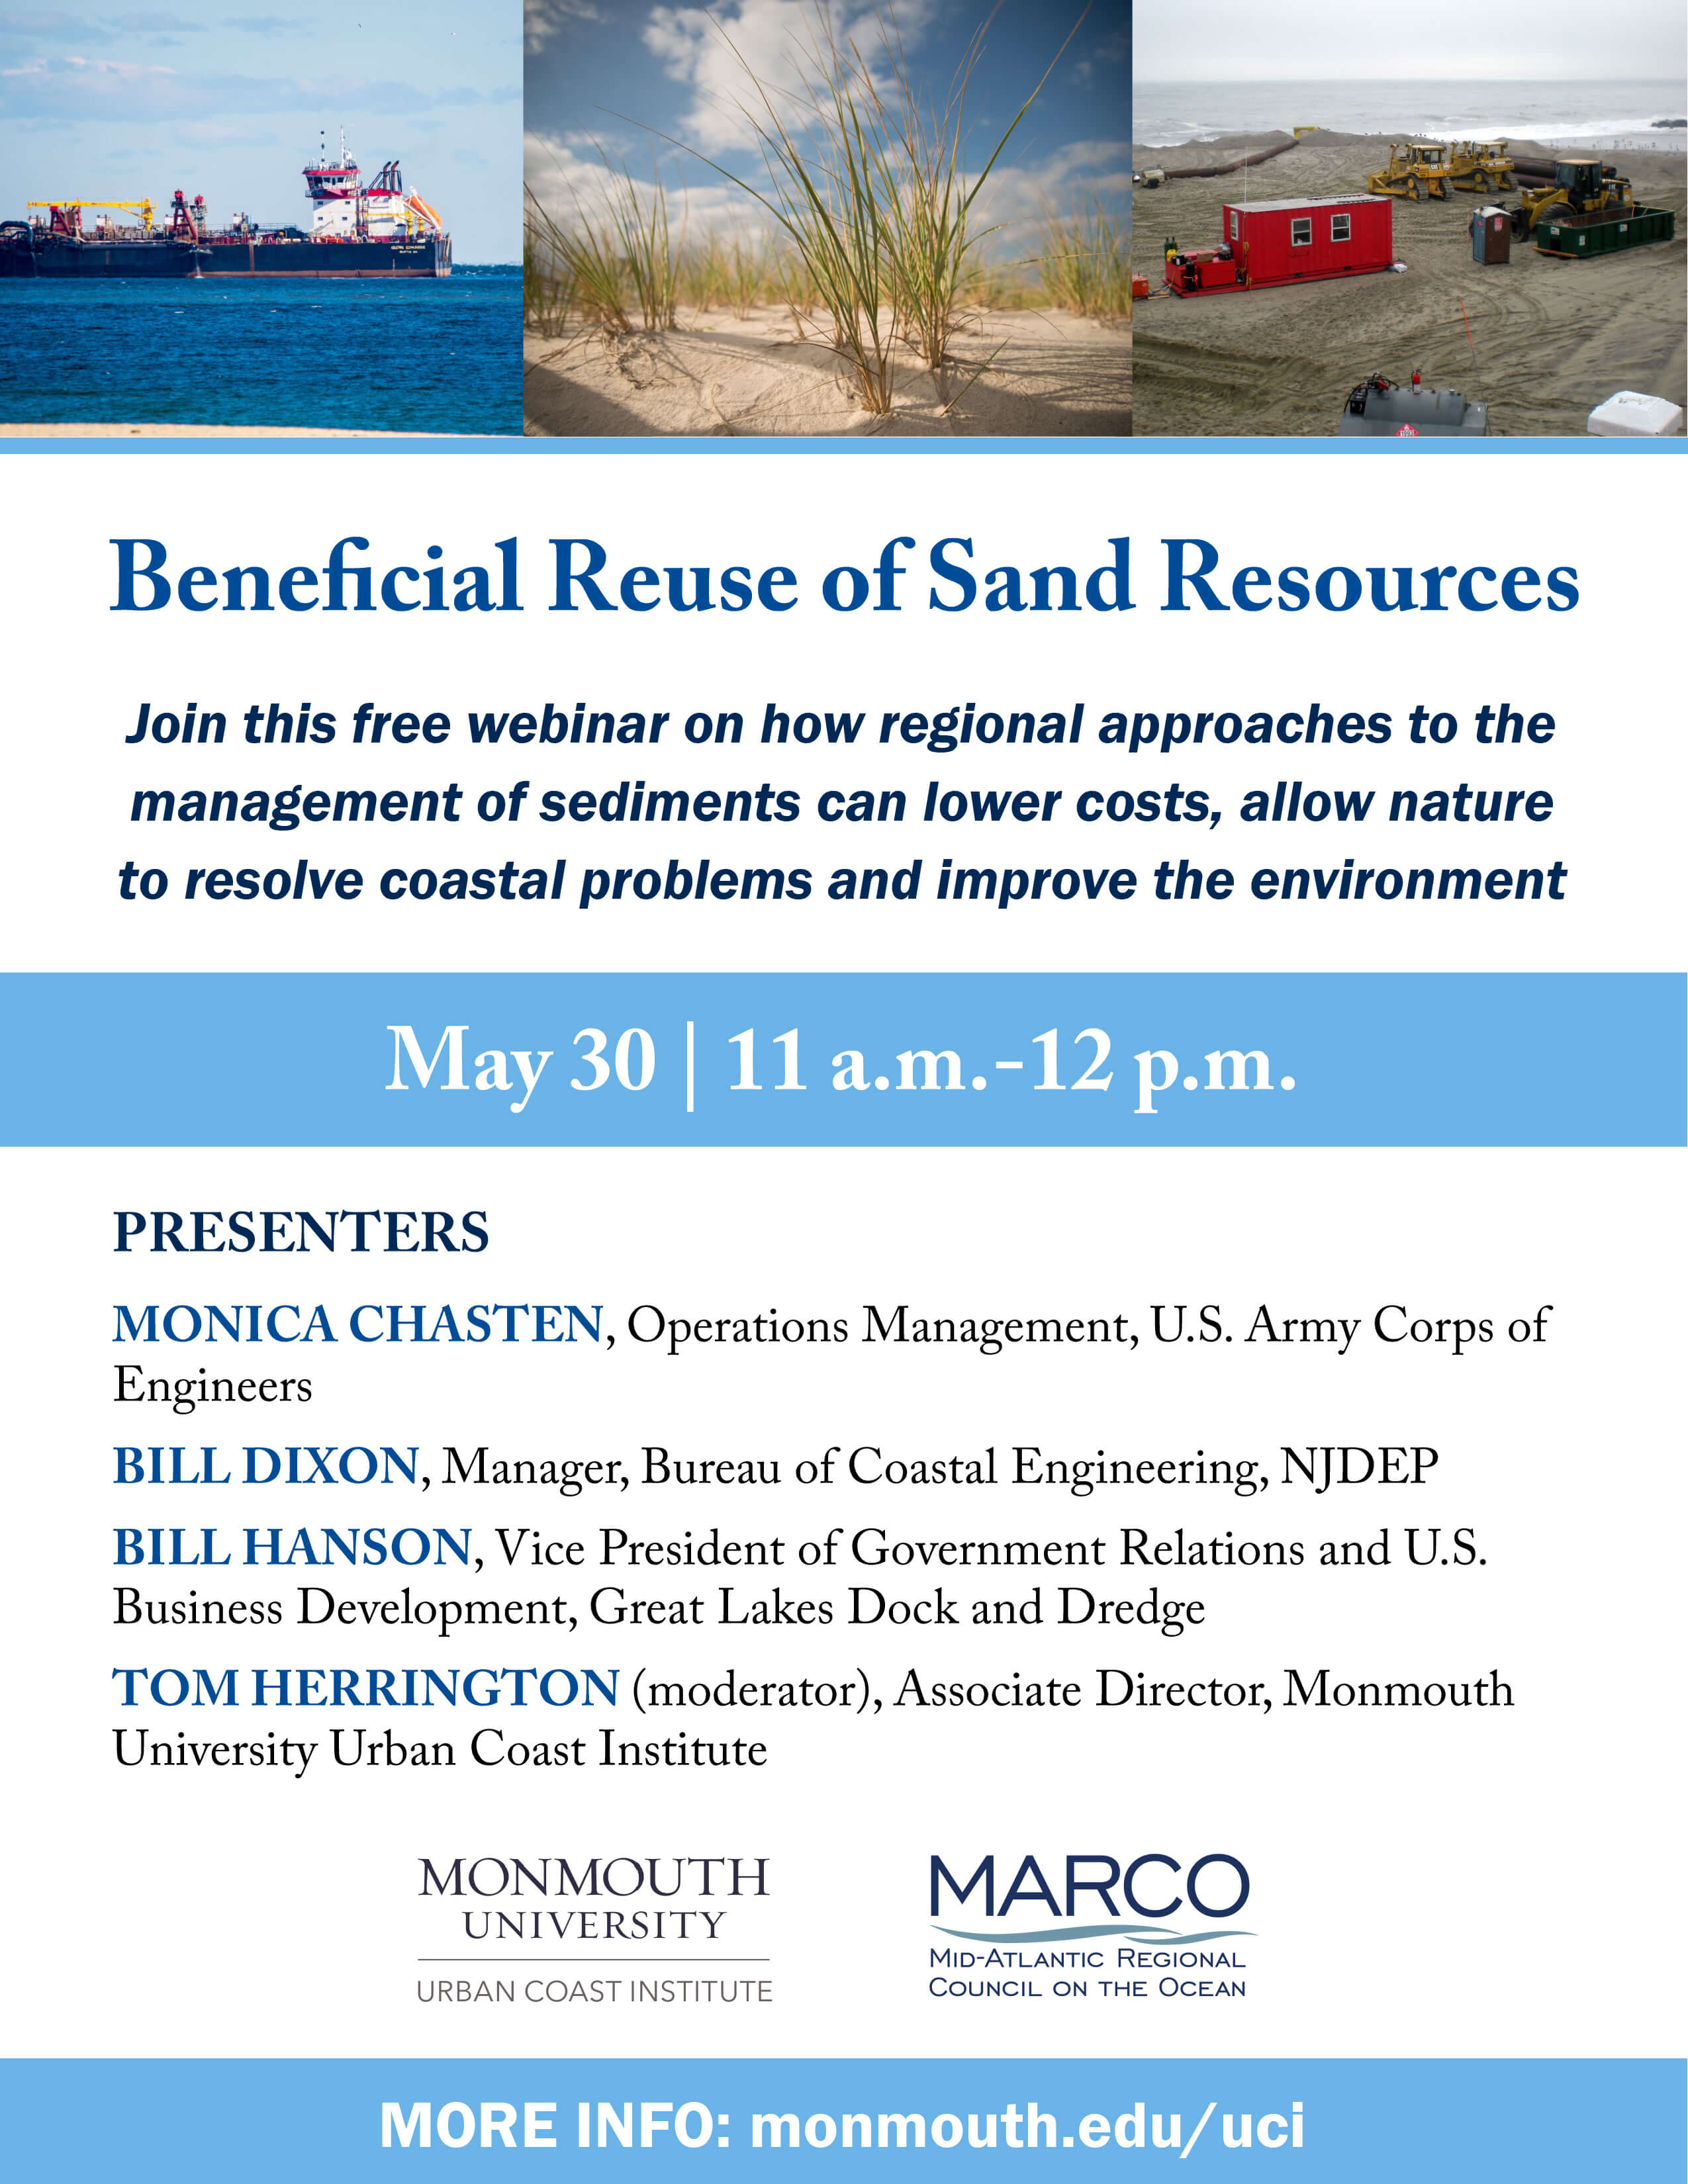 A poster for the Beneficial Reuse of Sand Resources event.